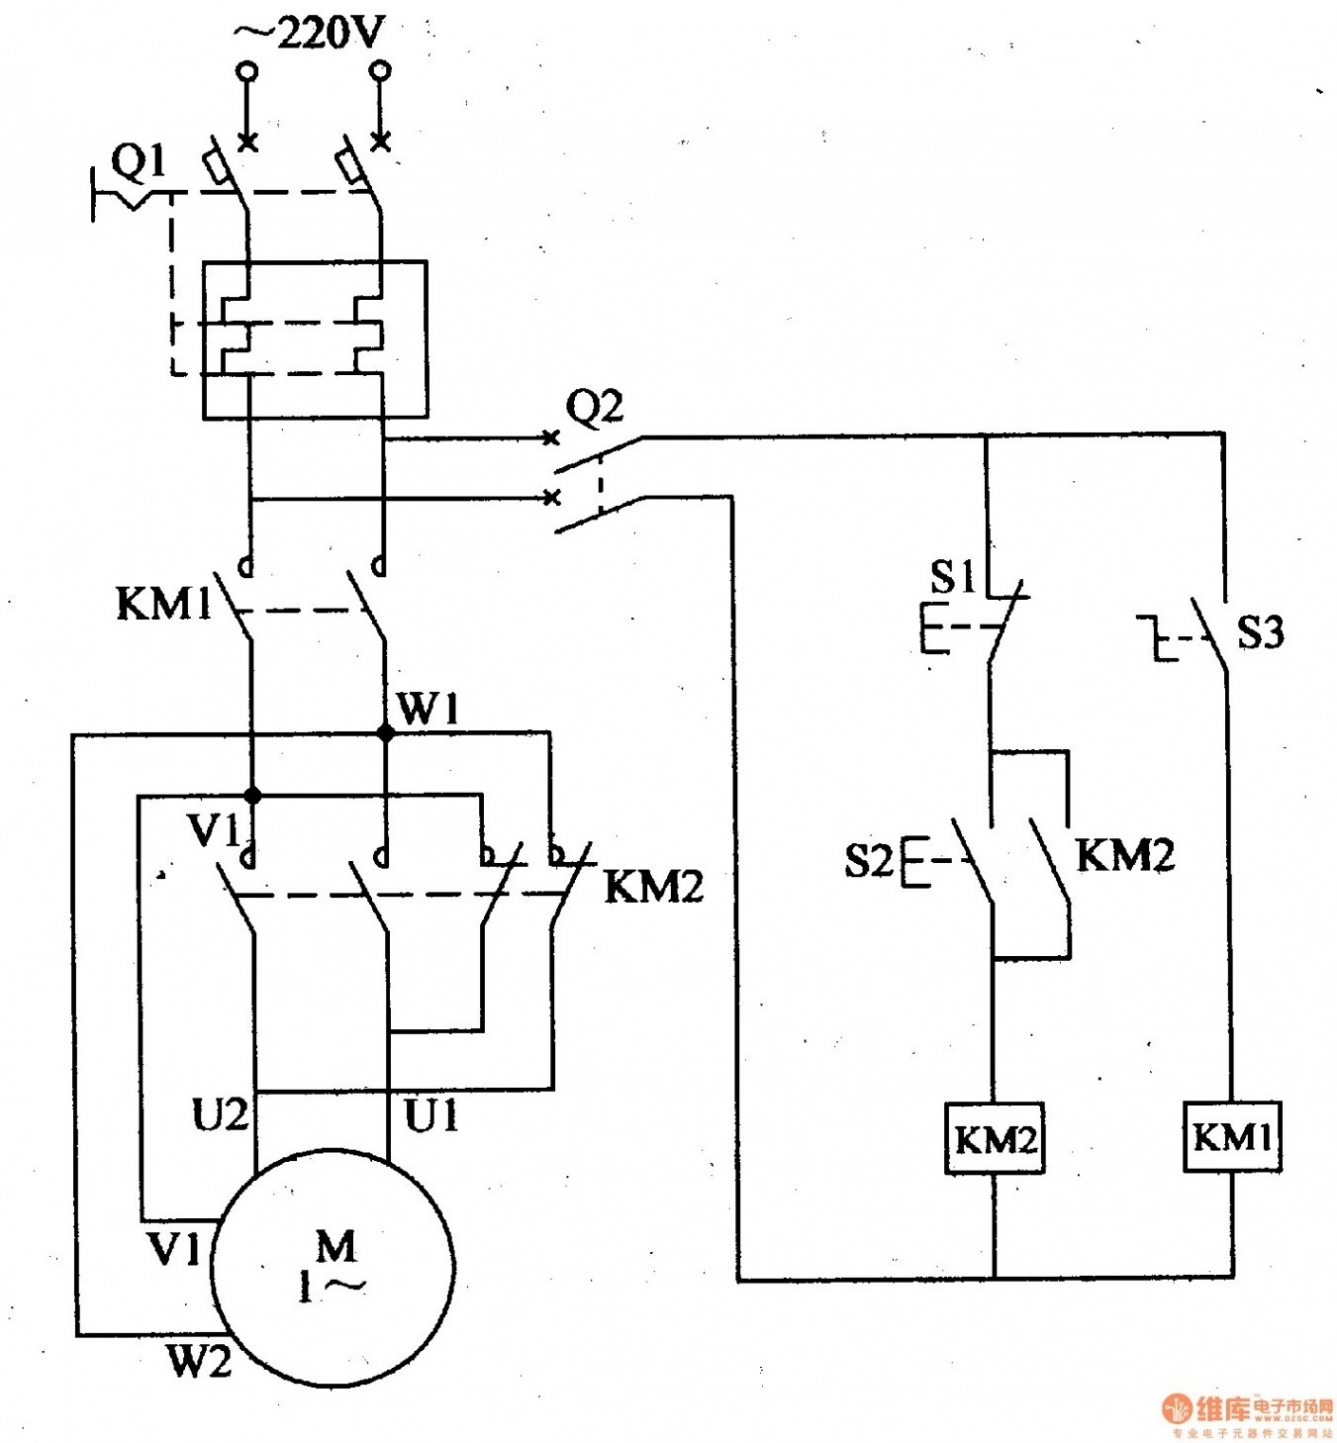 wiring diagram 220 volt circuit